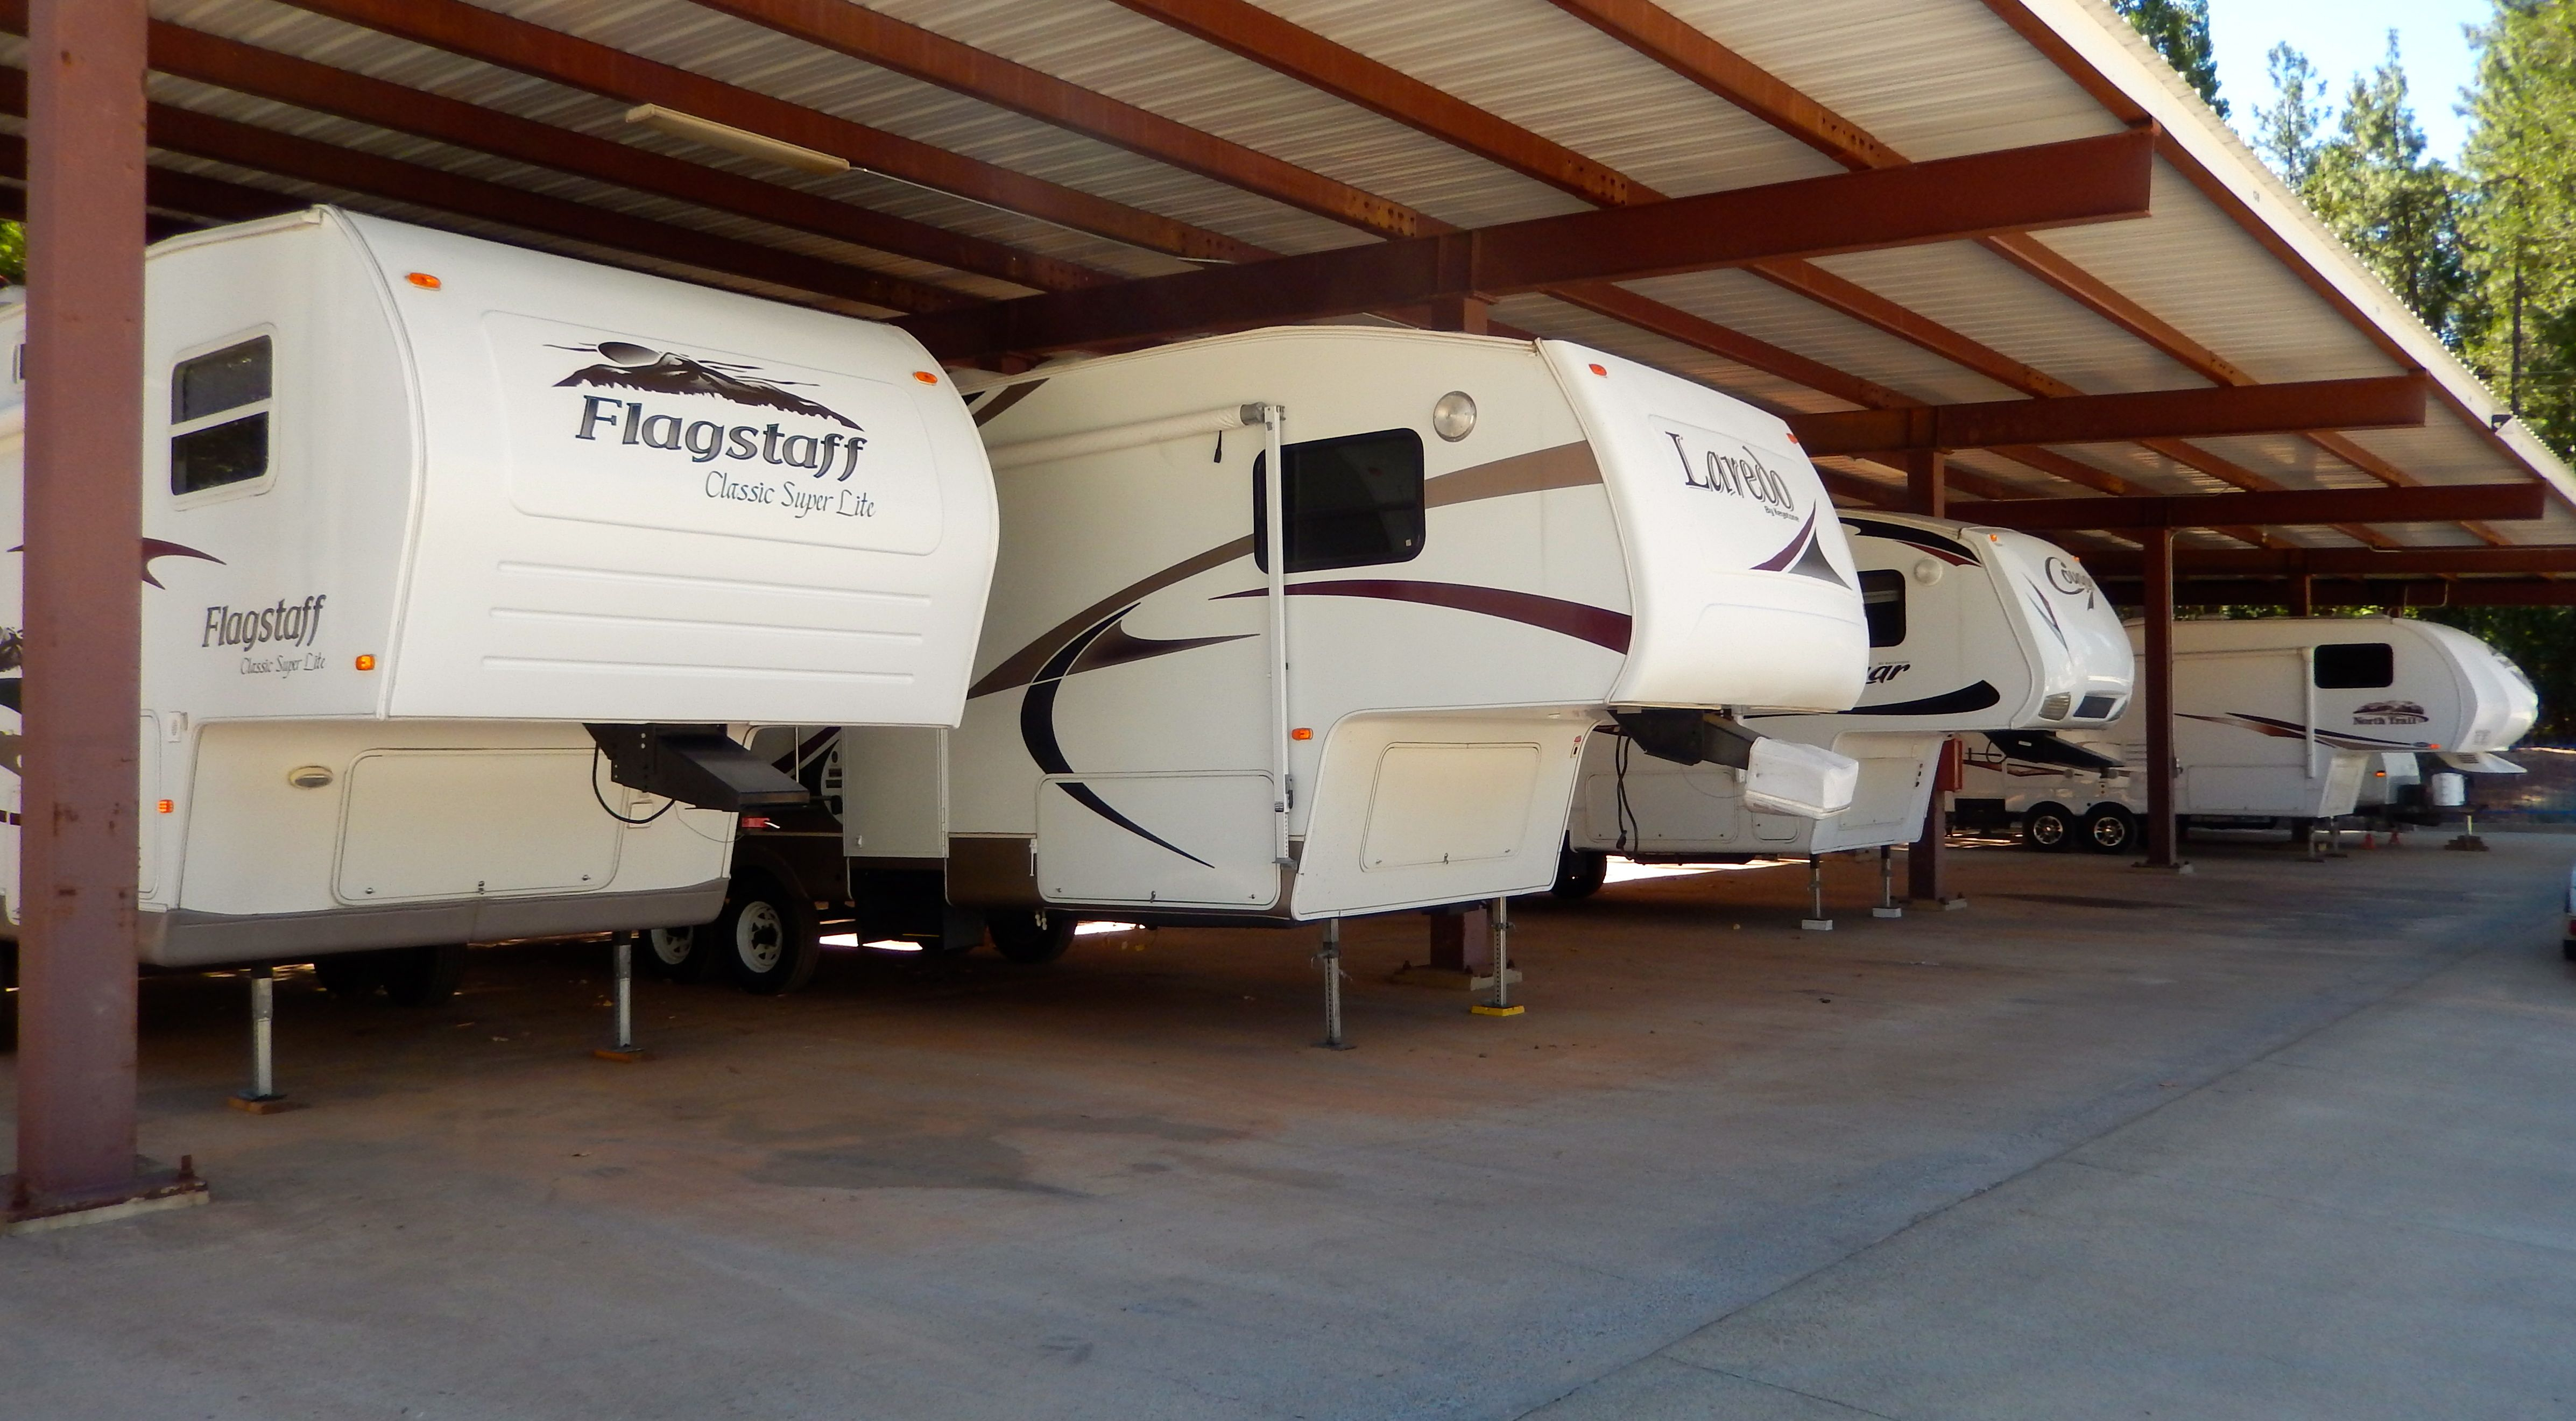 Canopy covered parking at arcos pioneer rvstorage